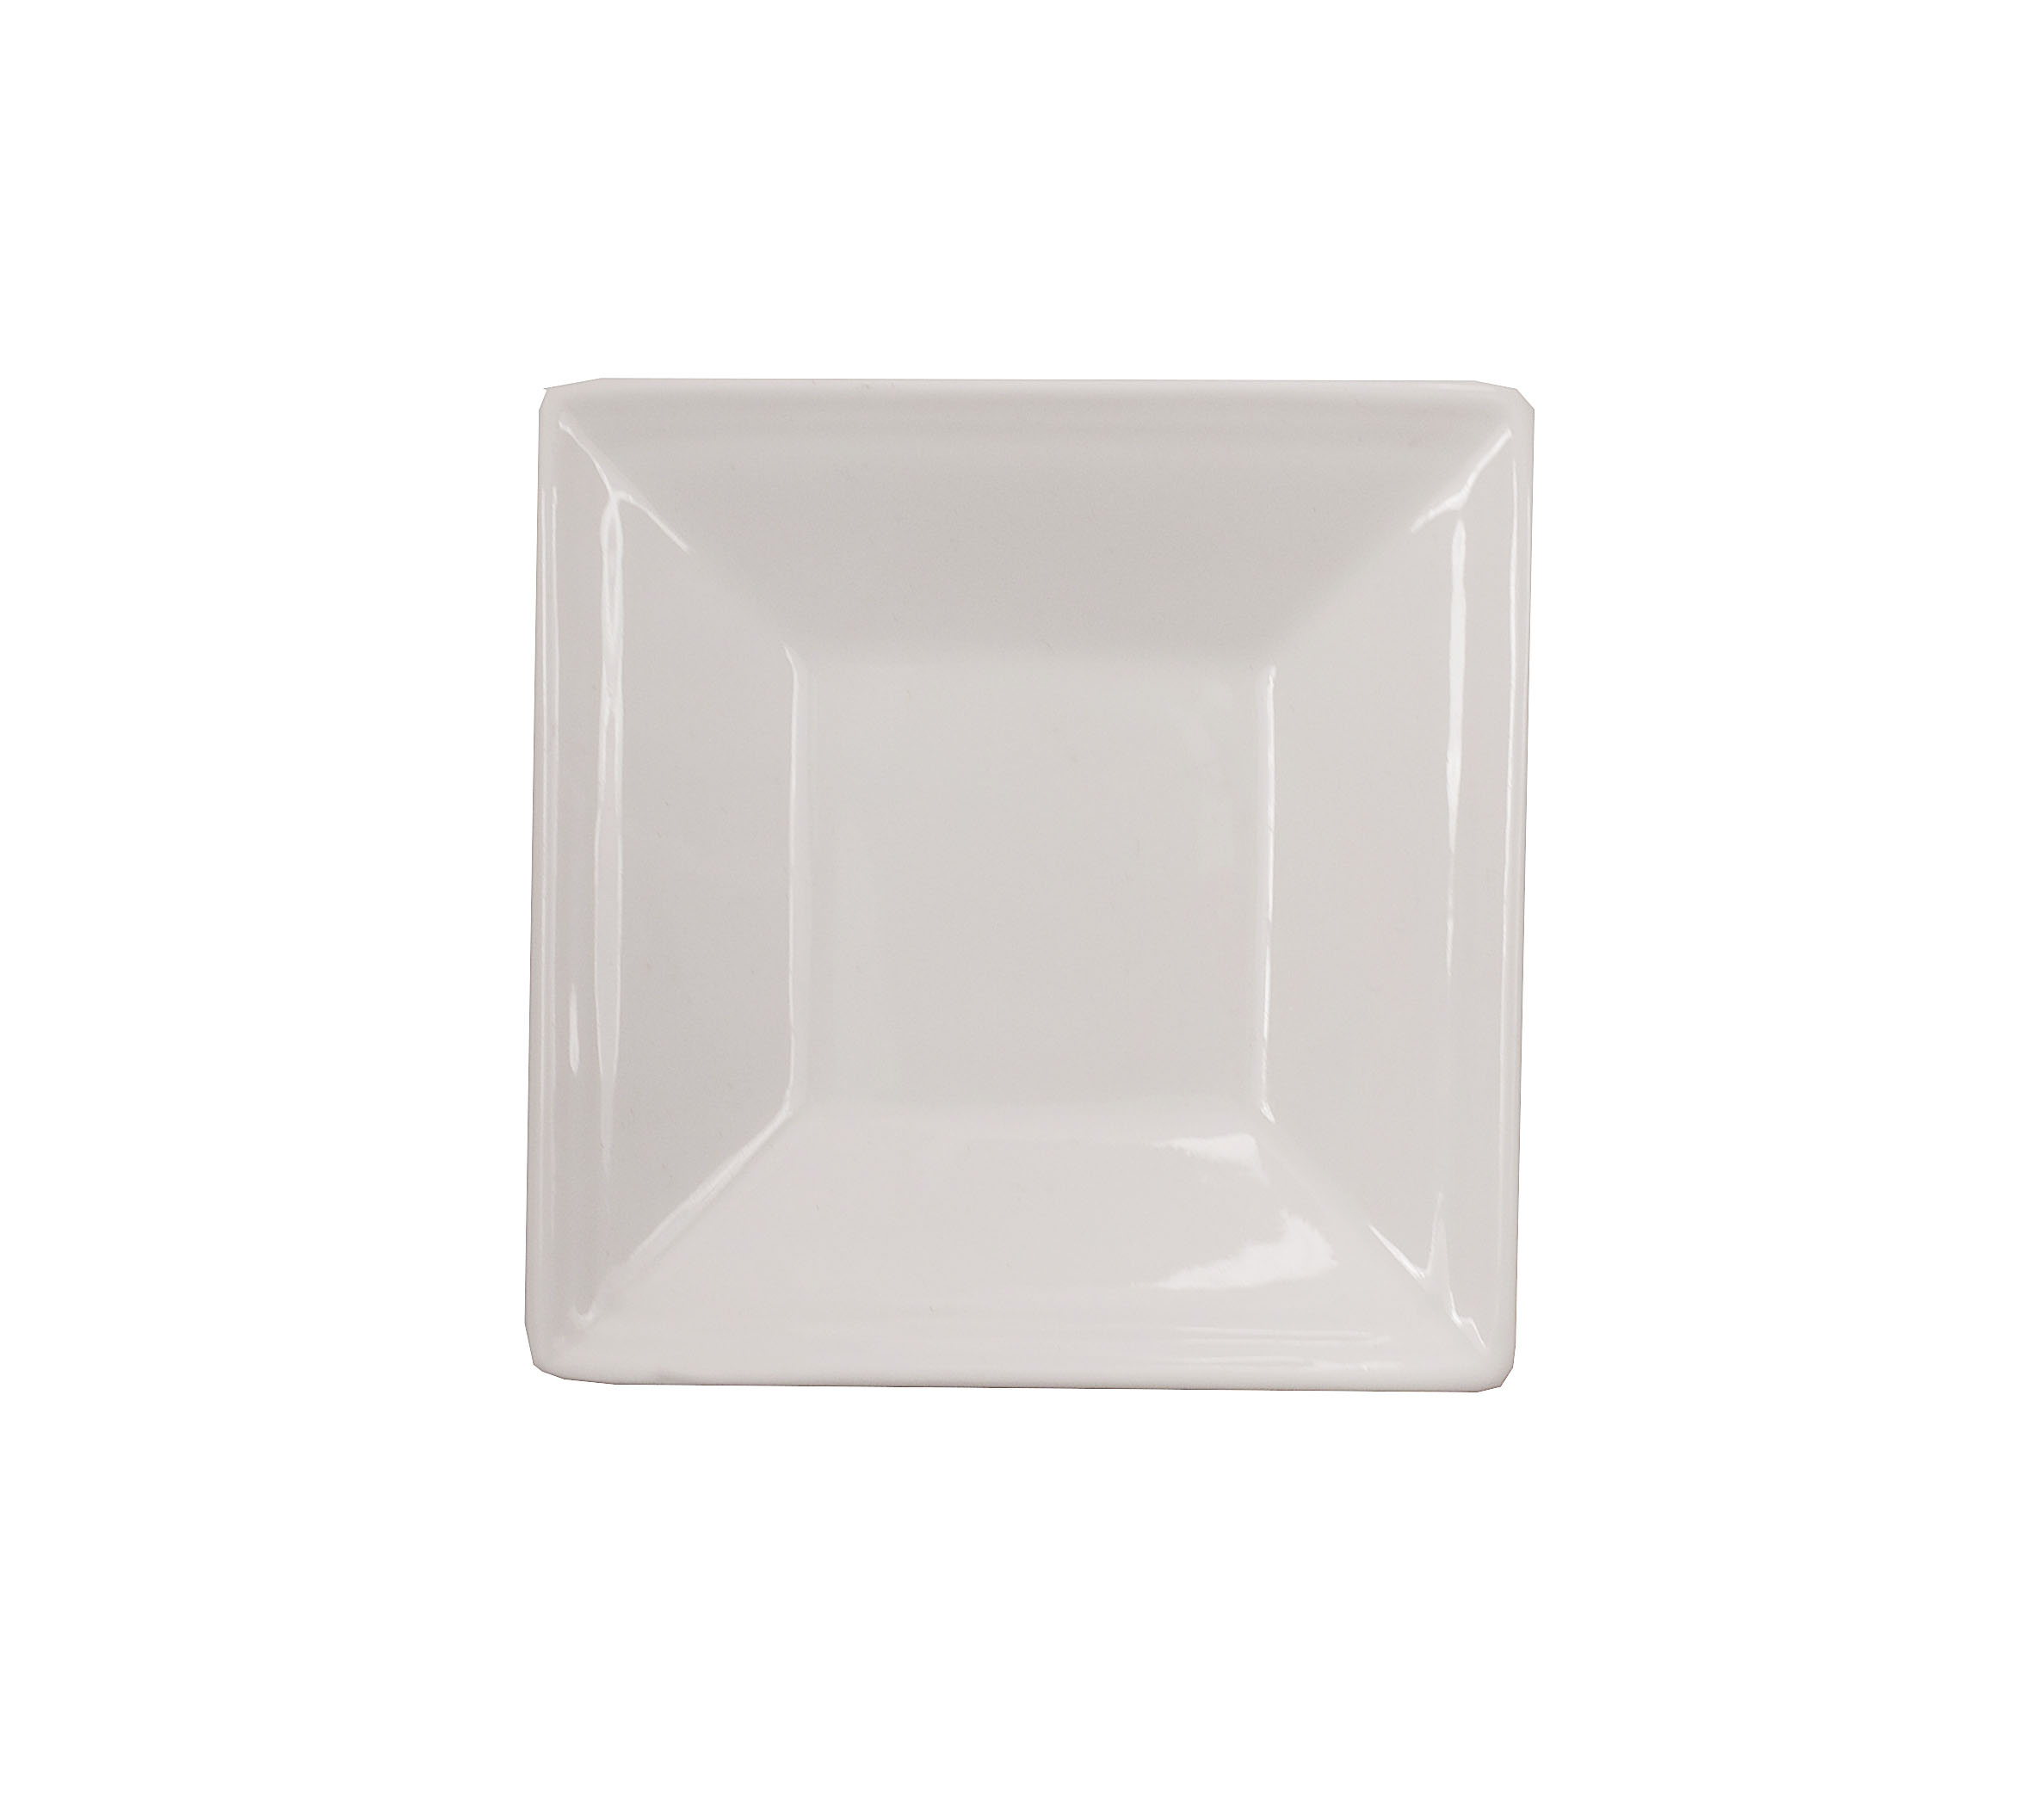 4 Small square white ceramic plates with sloped edges 4 - PRICED EACH) 4 Small square white ceramic plates with sloped edges 4 - PRICED EACH) BIN277 ...  sc 1 st  newel props & 4 Small square white ceramic plates with sloped edges 4 - PRICED EACH)